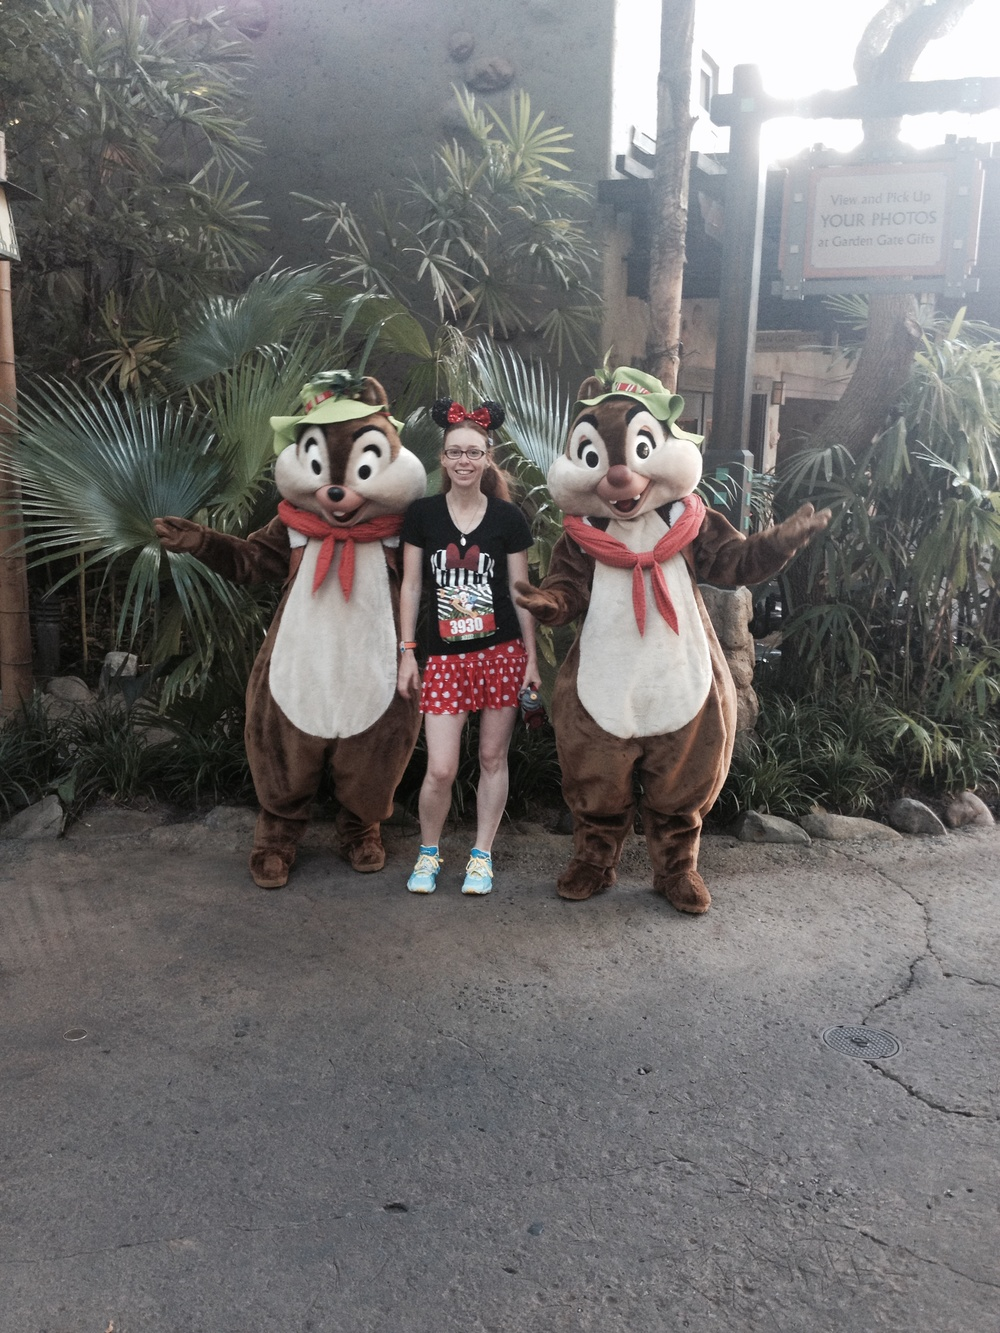 Chip and Dale!!